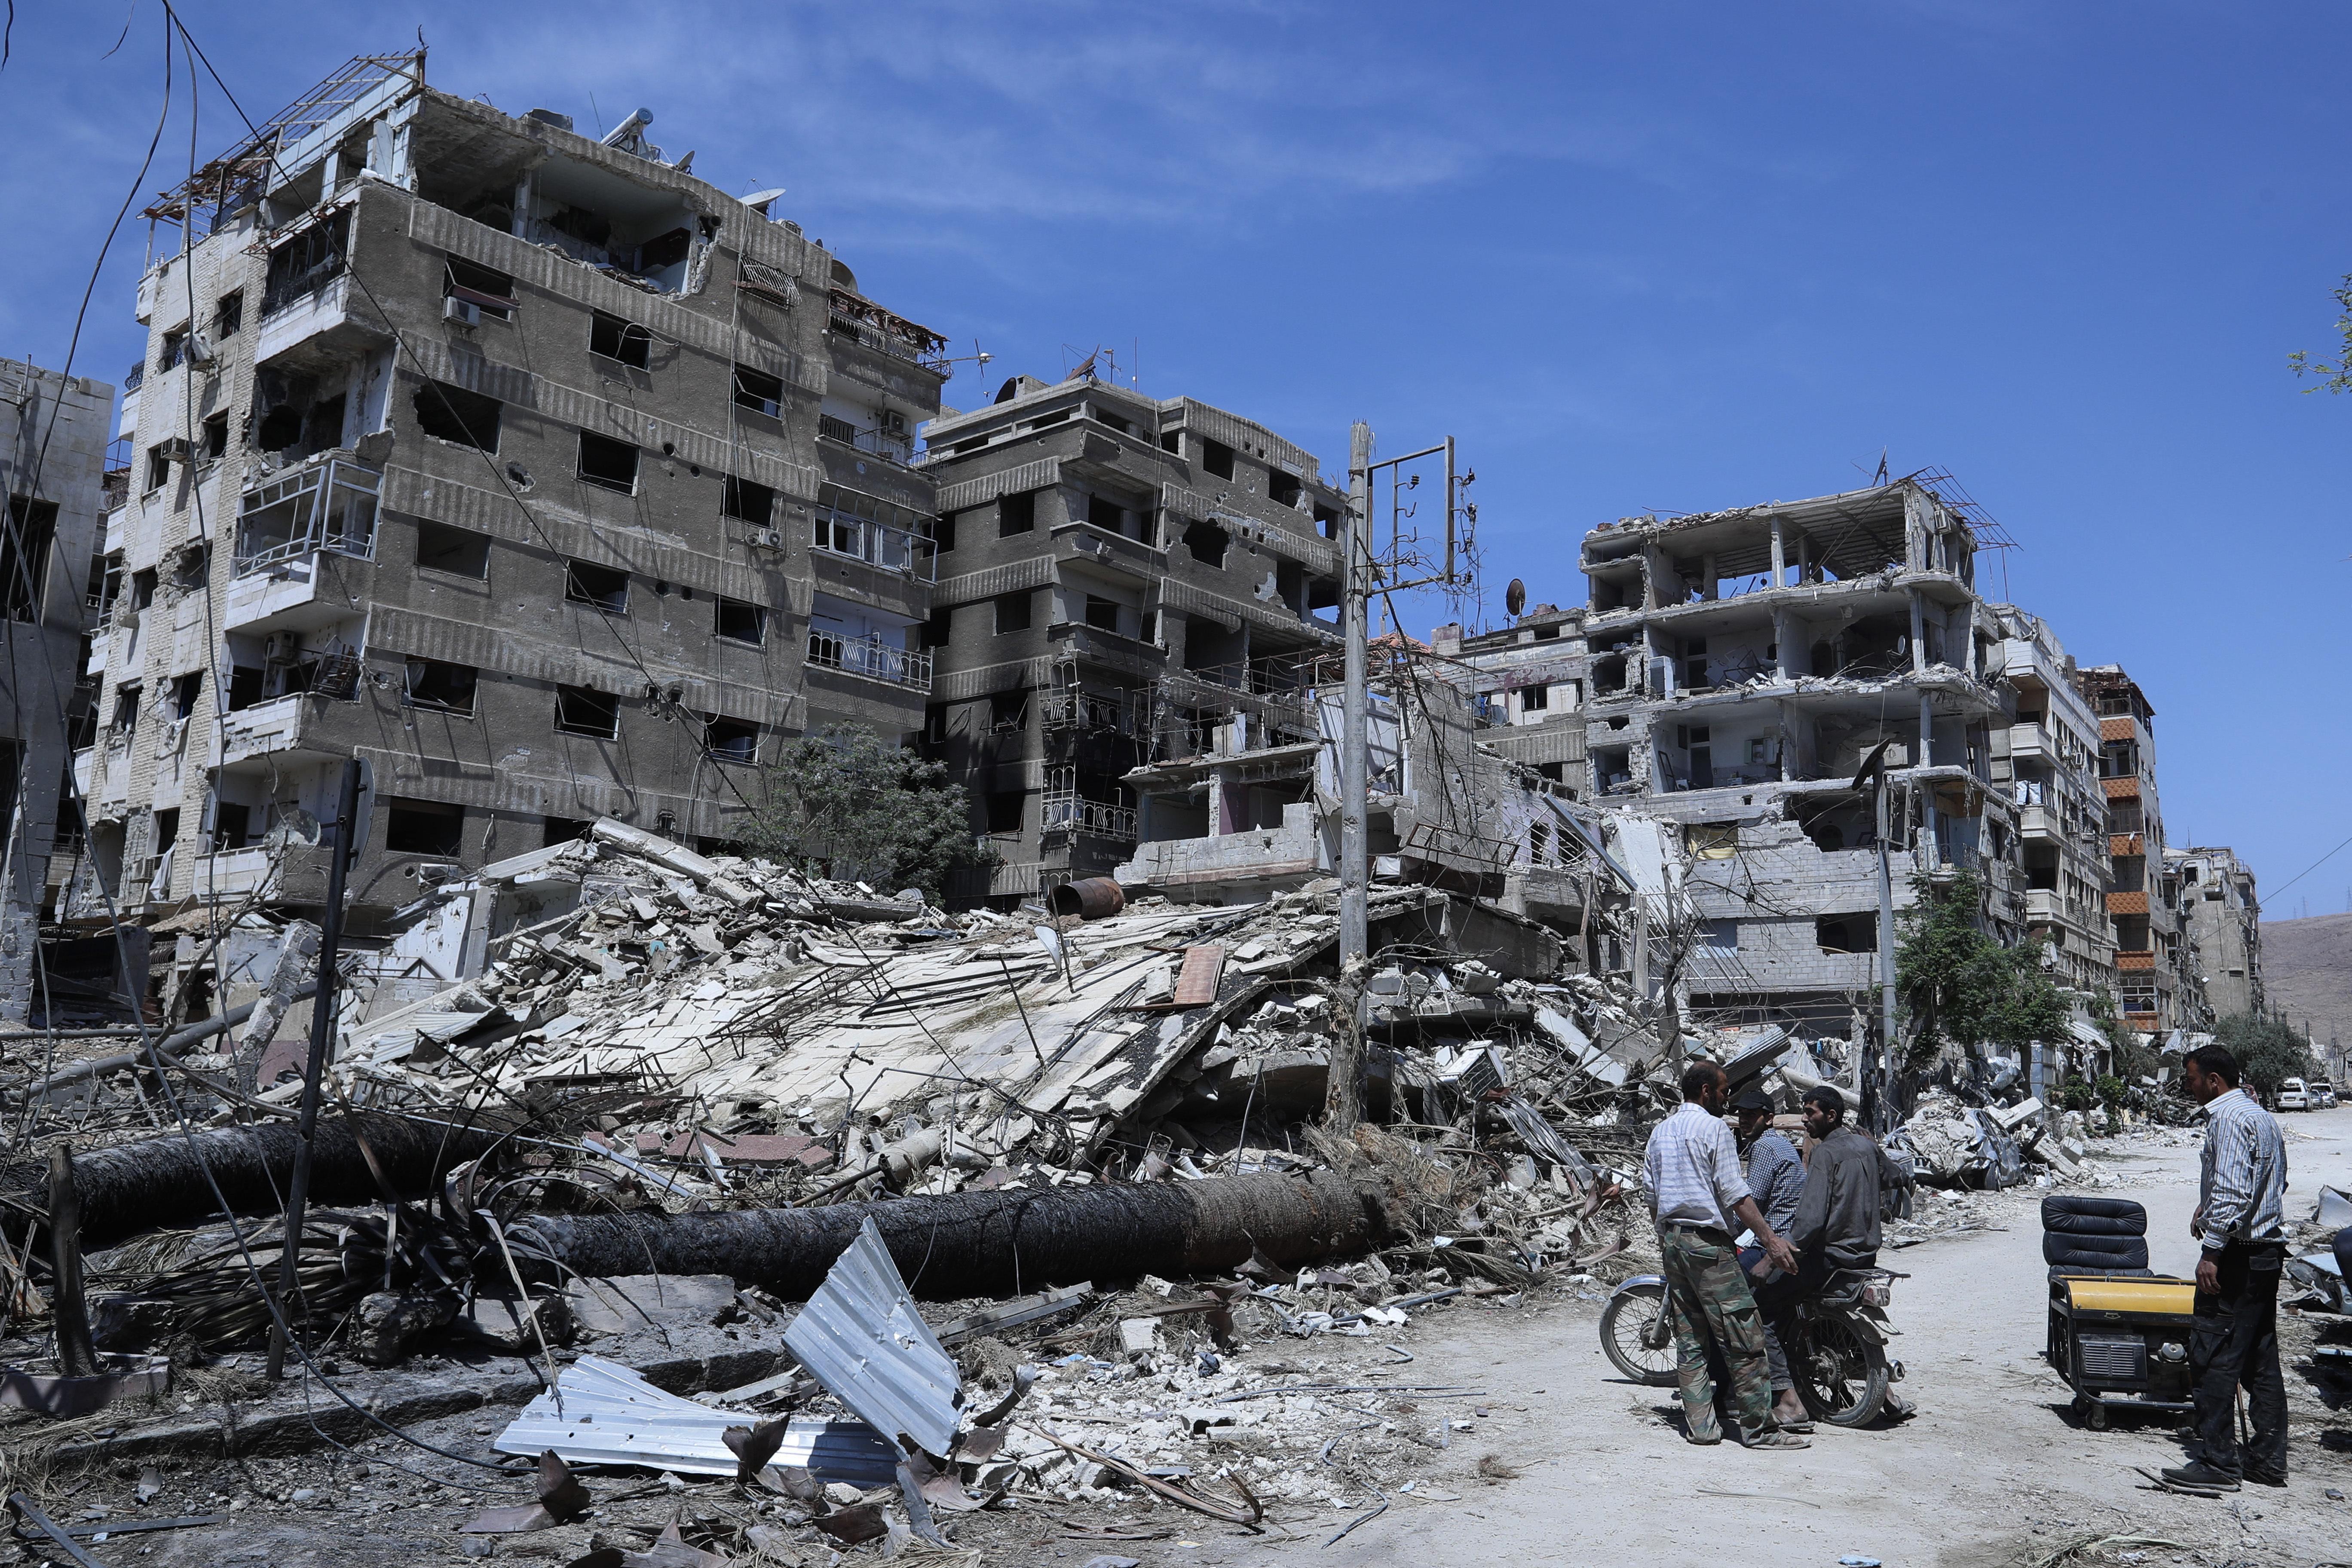 U.S. Syria envoy 'cannot confirm' latest claim of chemical weapons in Syria